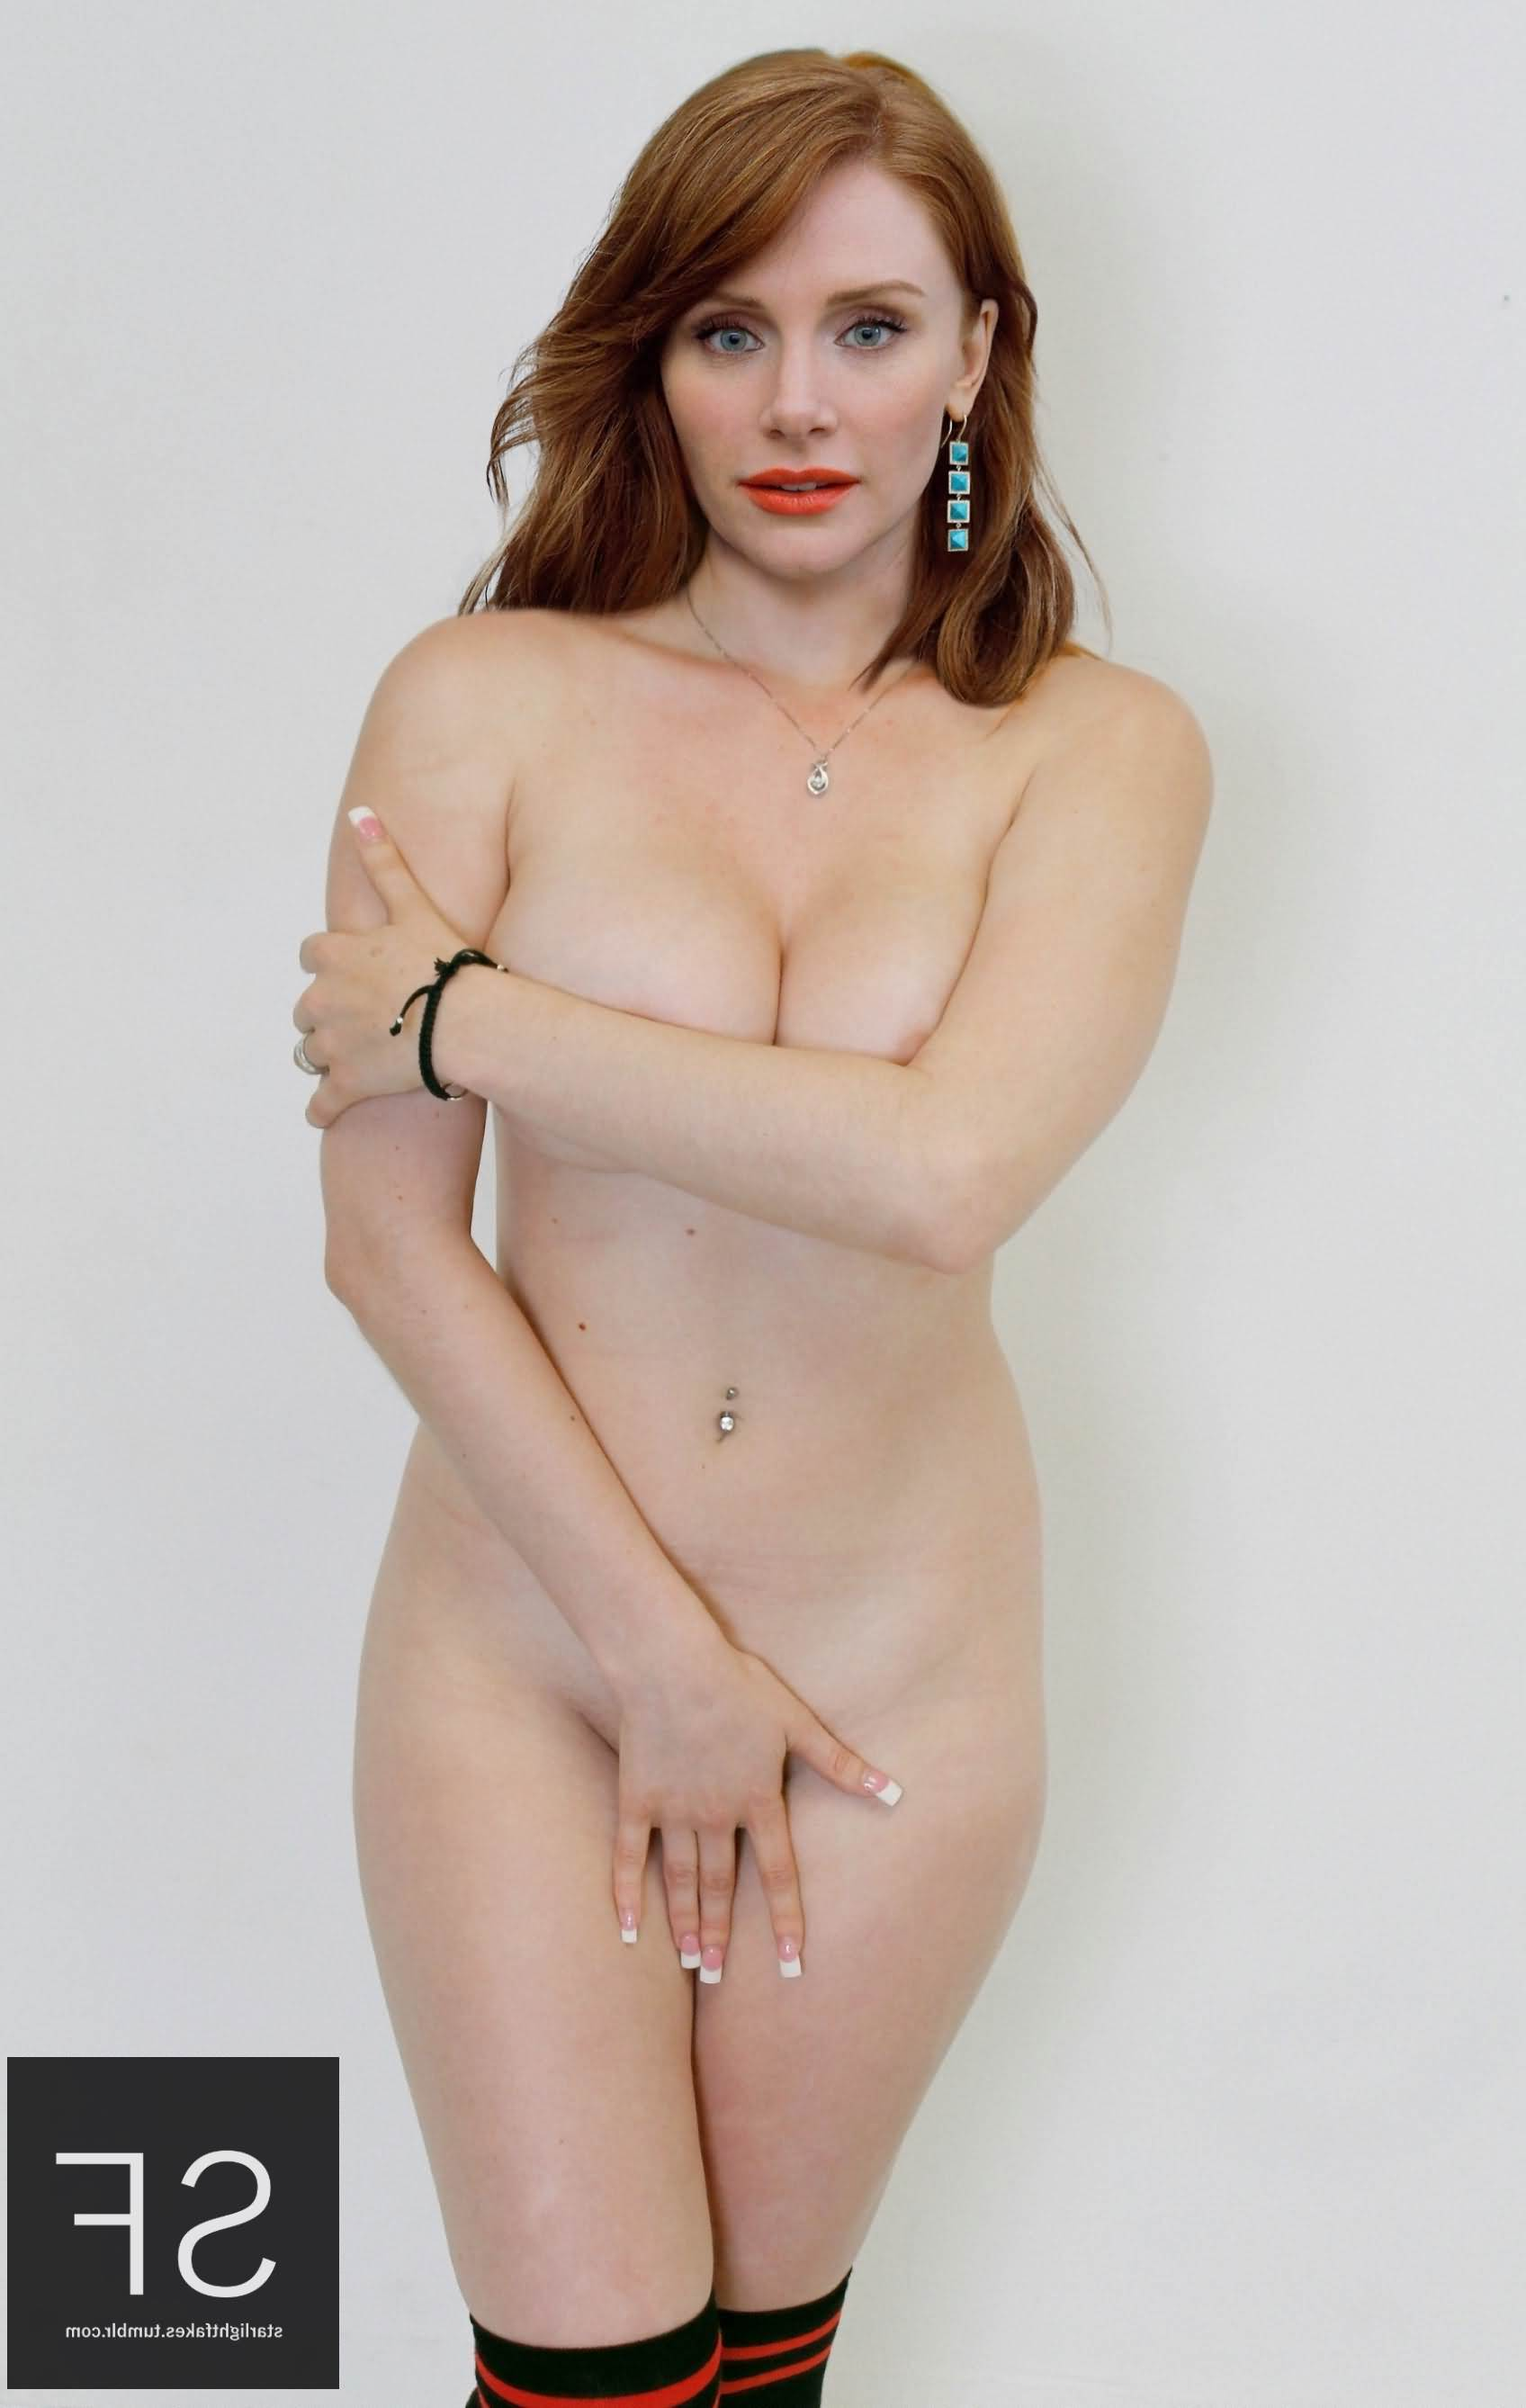 Bryce dallas howard nude opinion